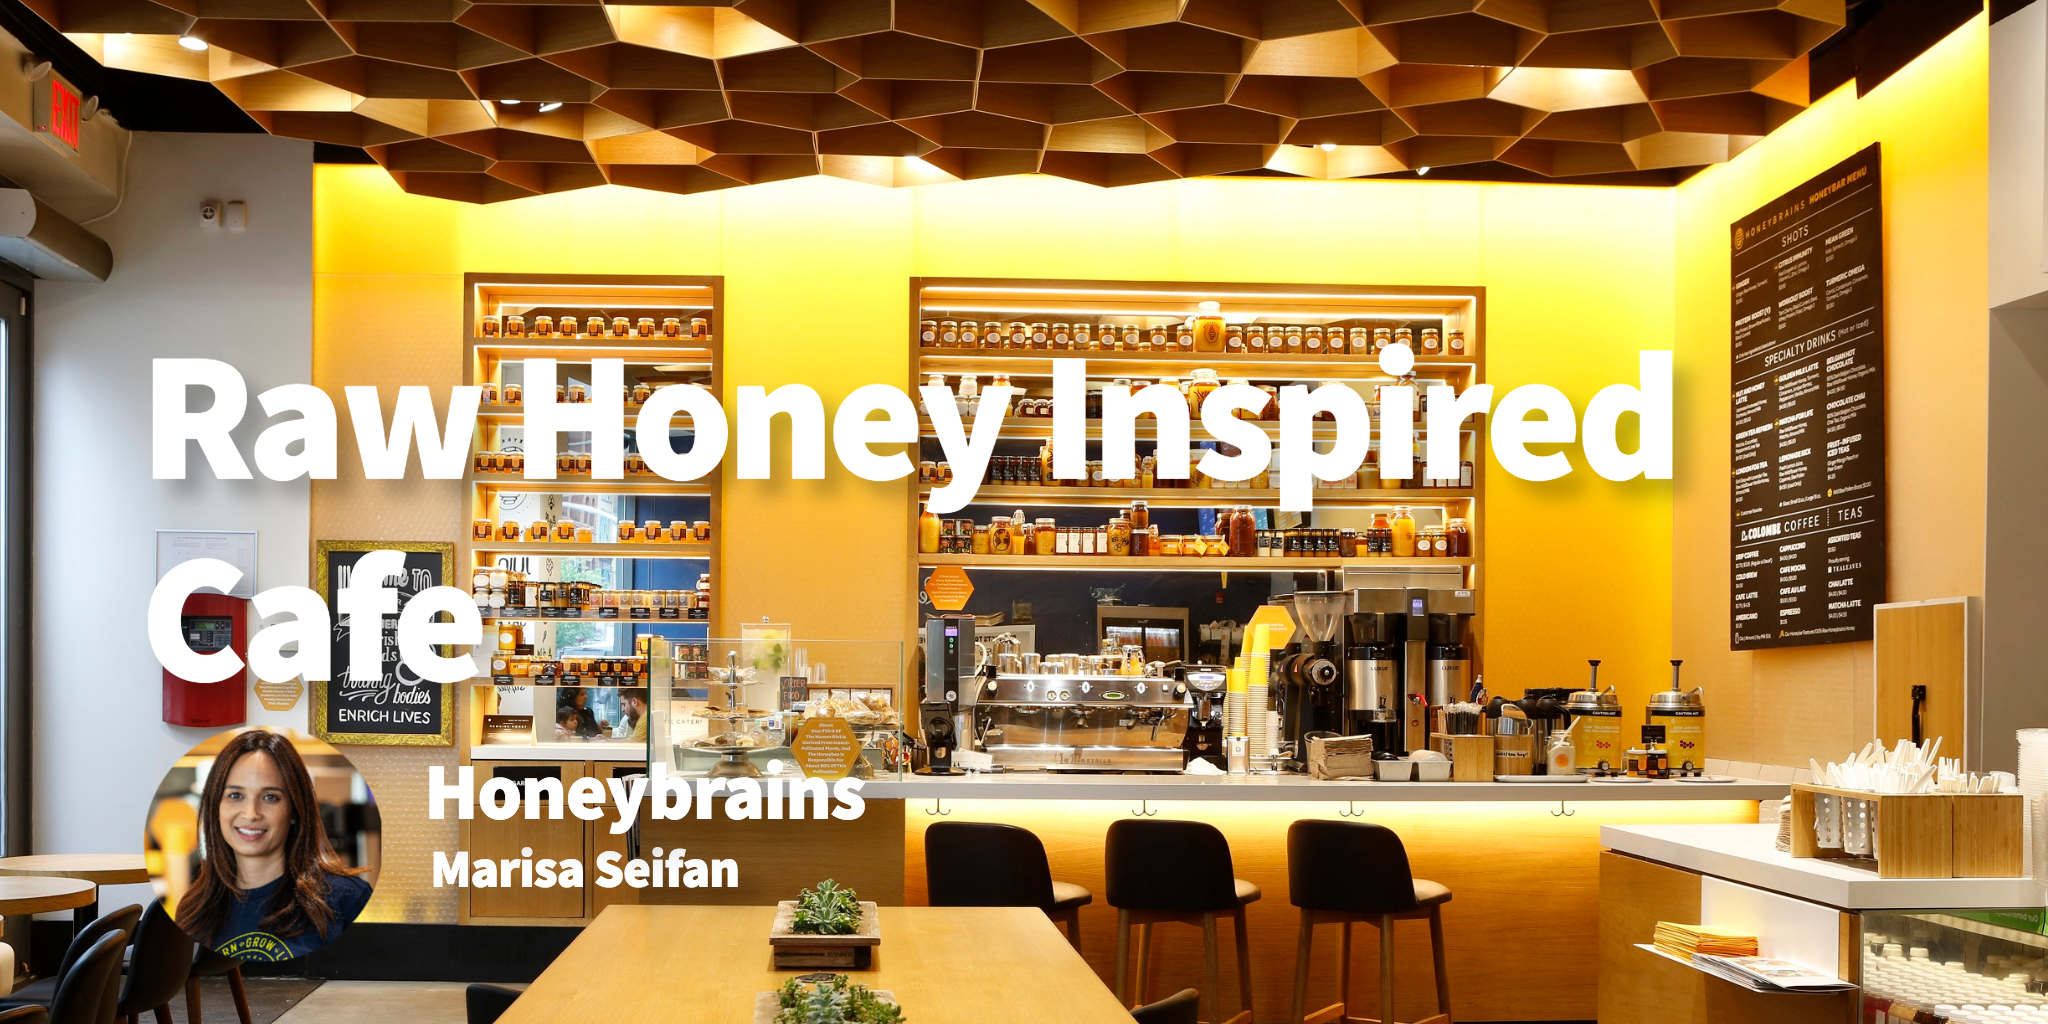 Honeybrains with Marisa Seifan